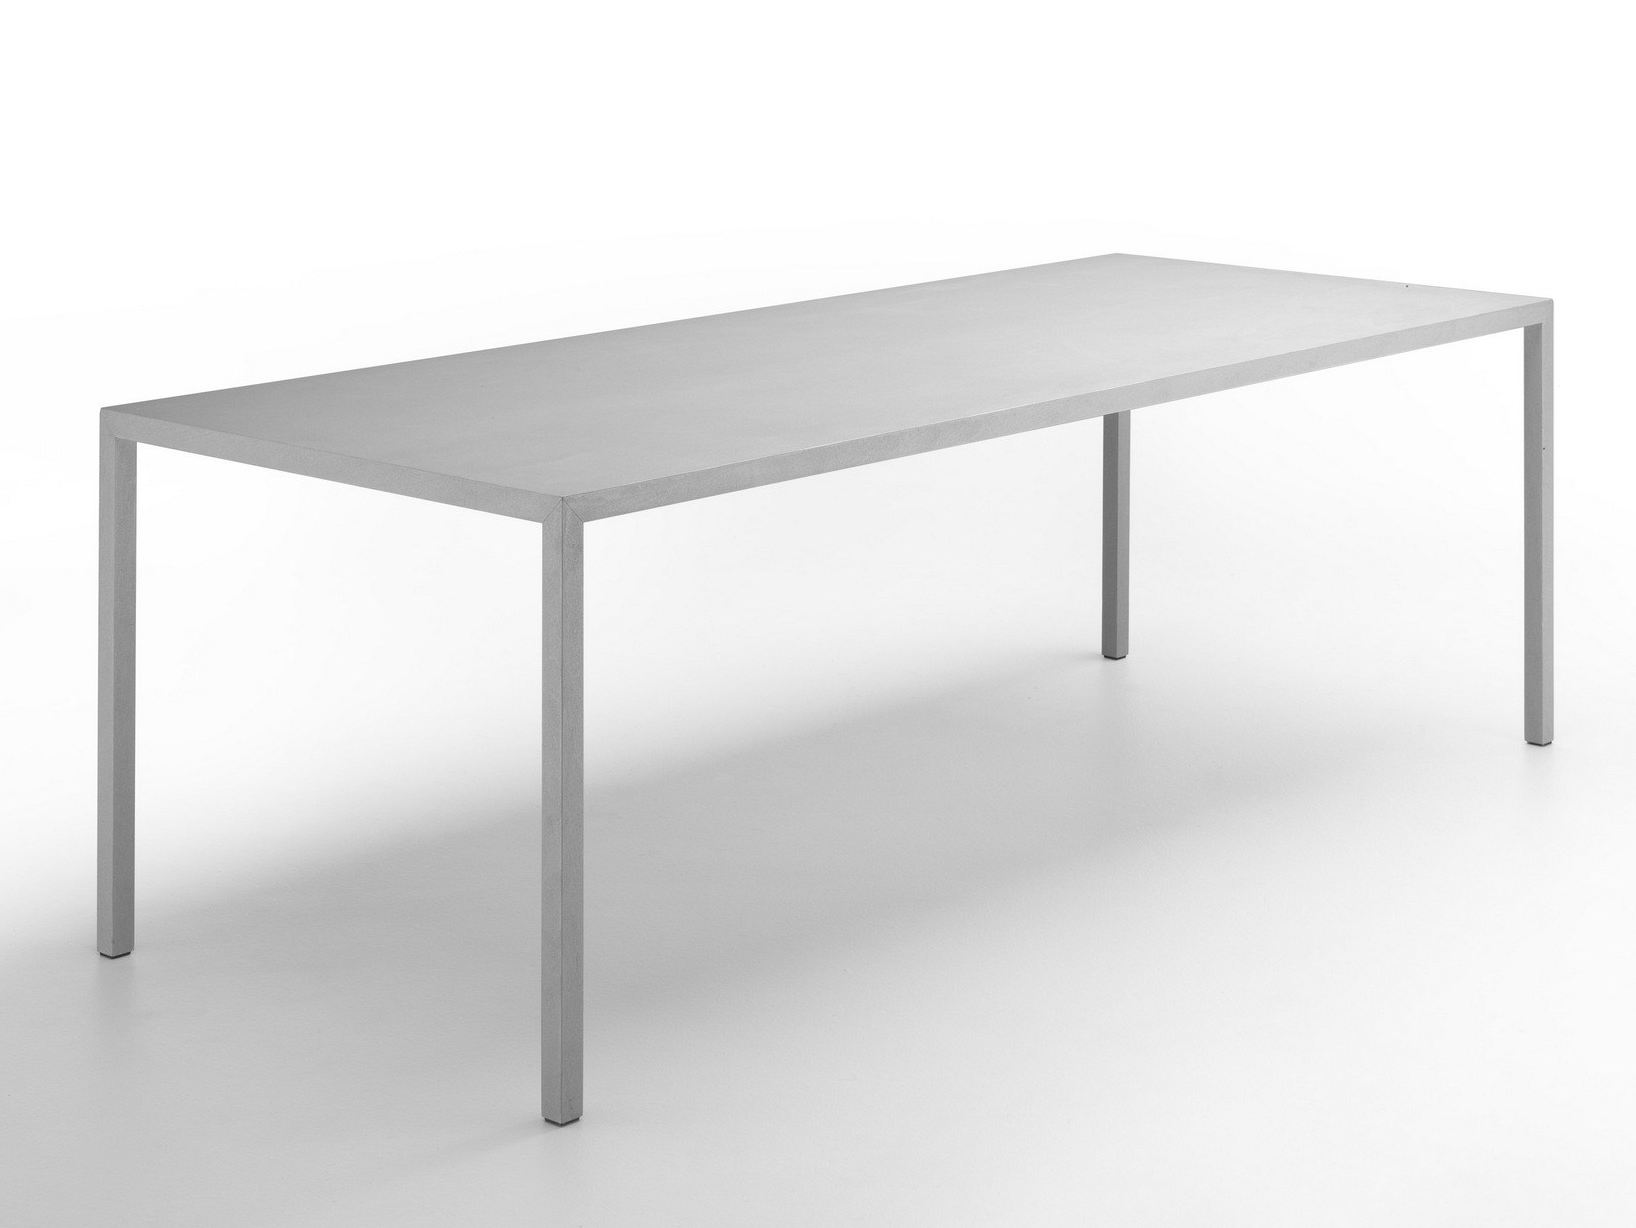 Mdf Tense Tense Material Stone Table By Mdf Italia